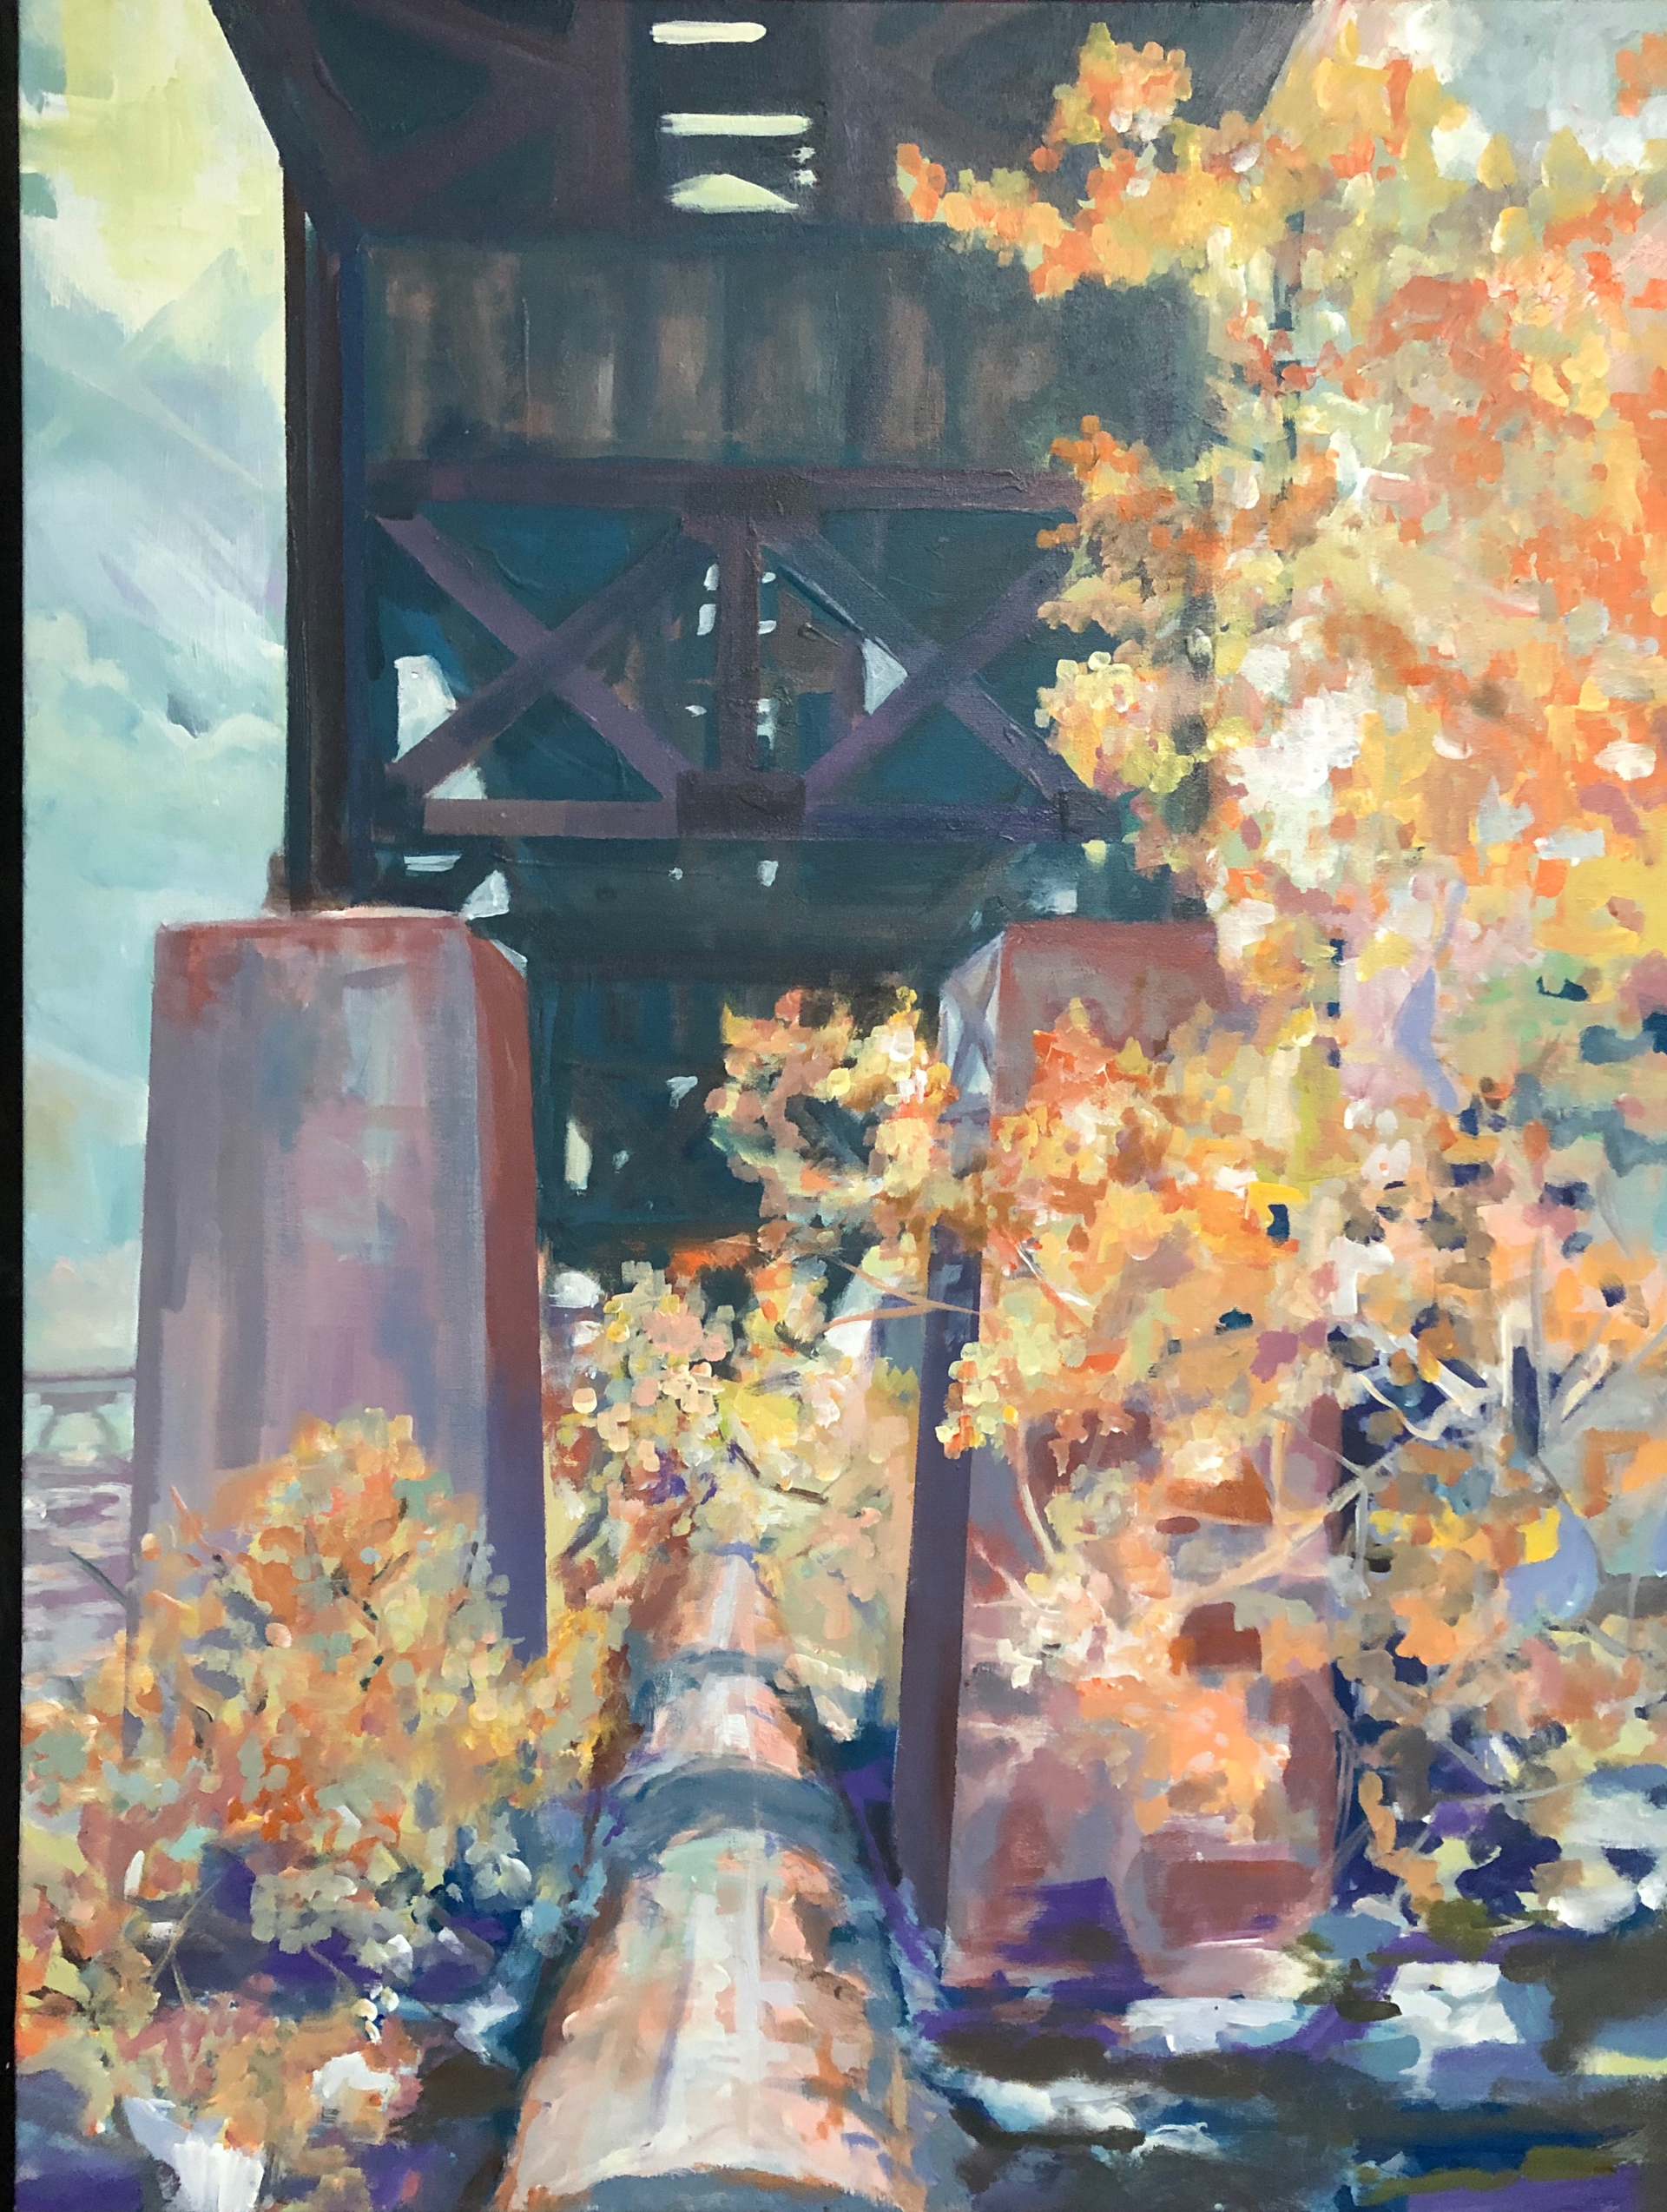 Fall Pipeline Walk, River Birch Set Aflame , Summer's Last Lament by Ed Trask